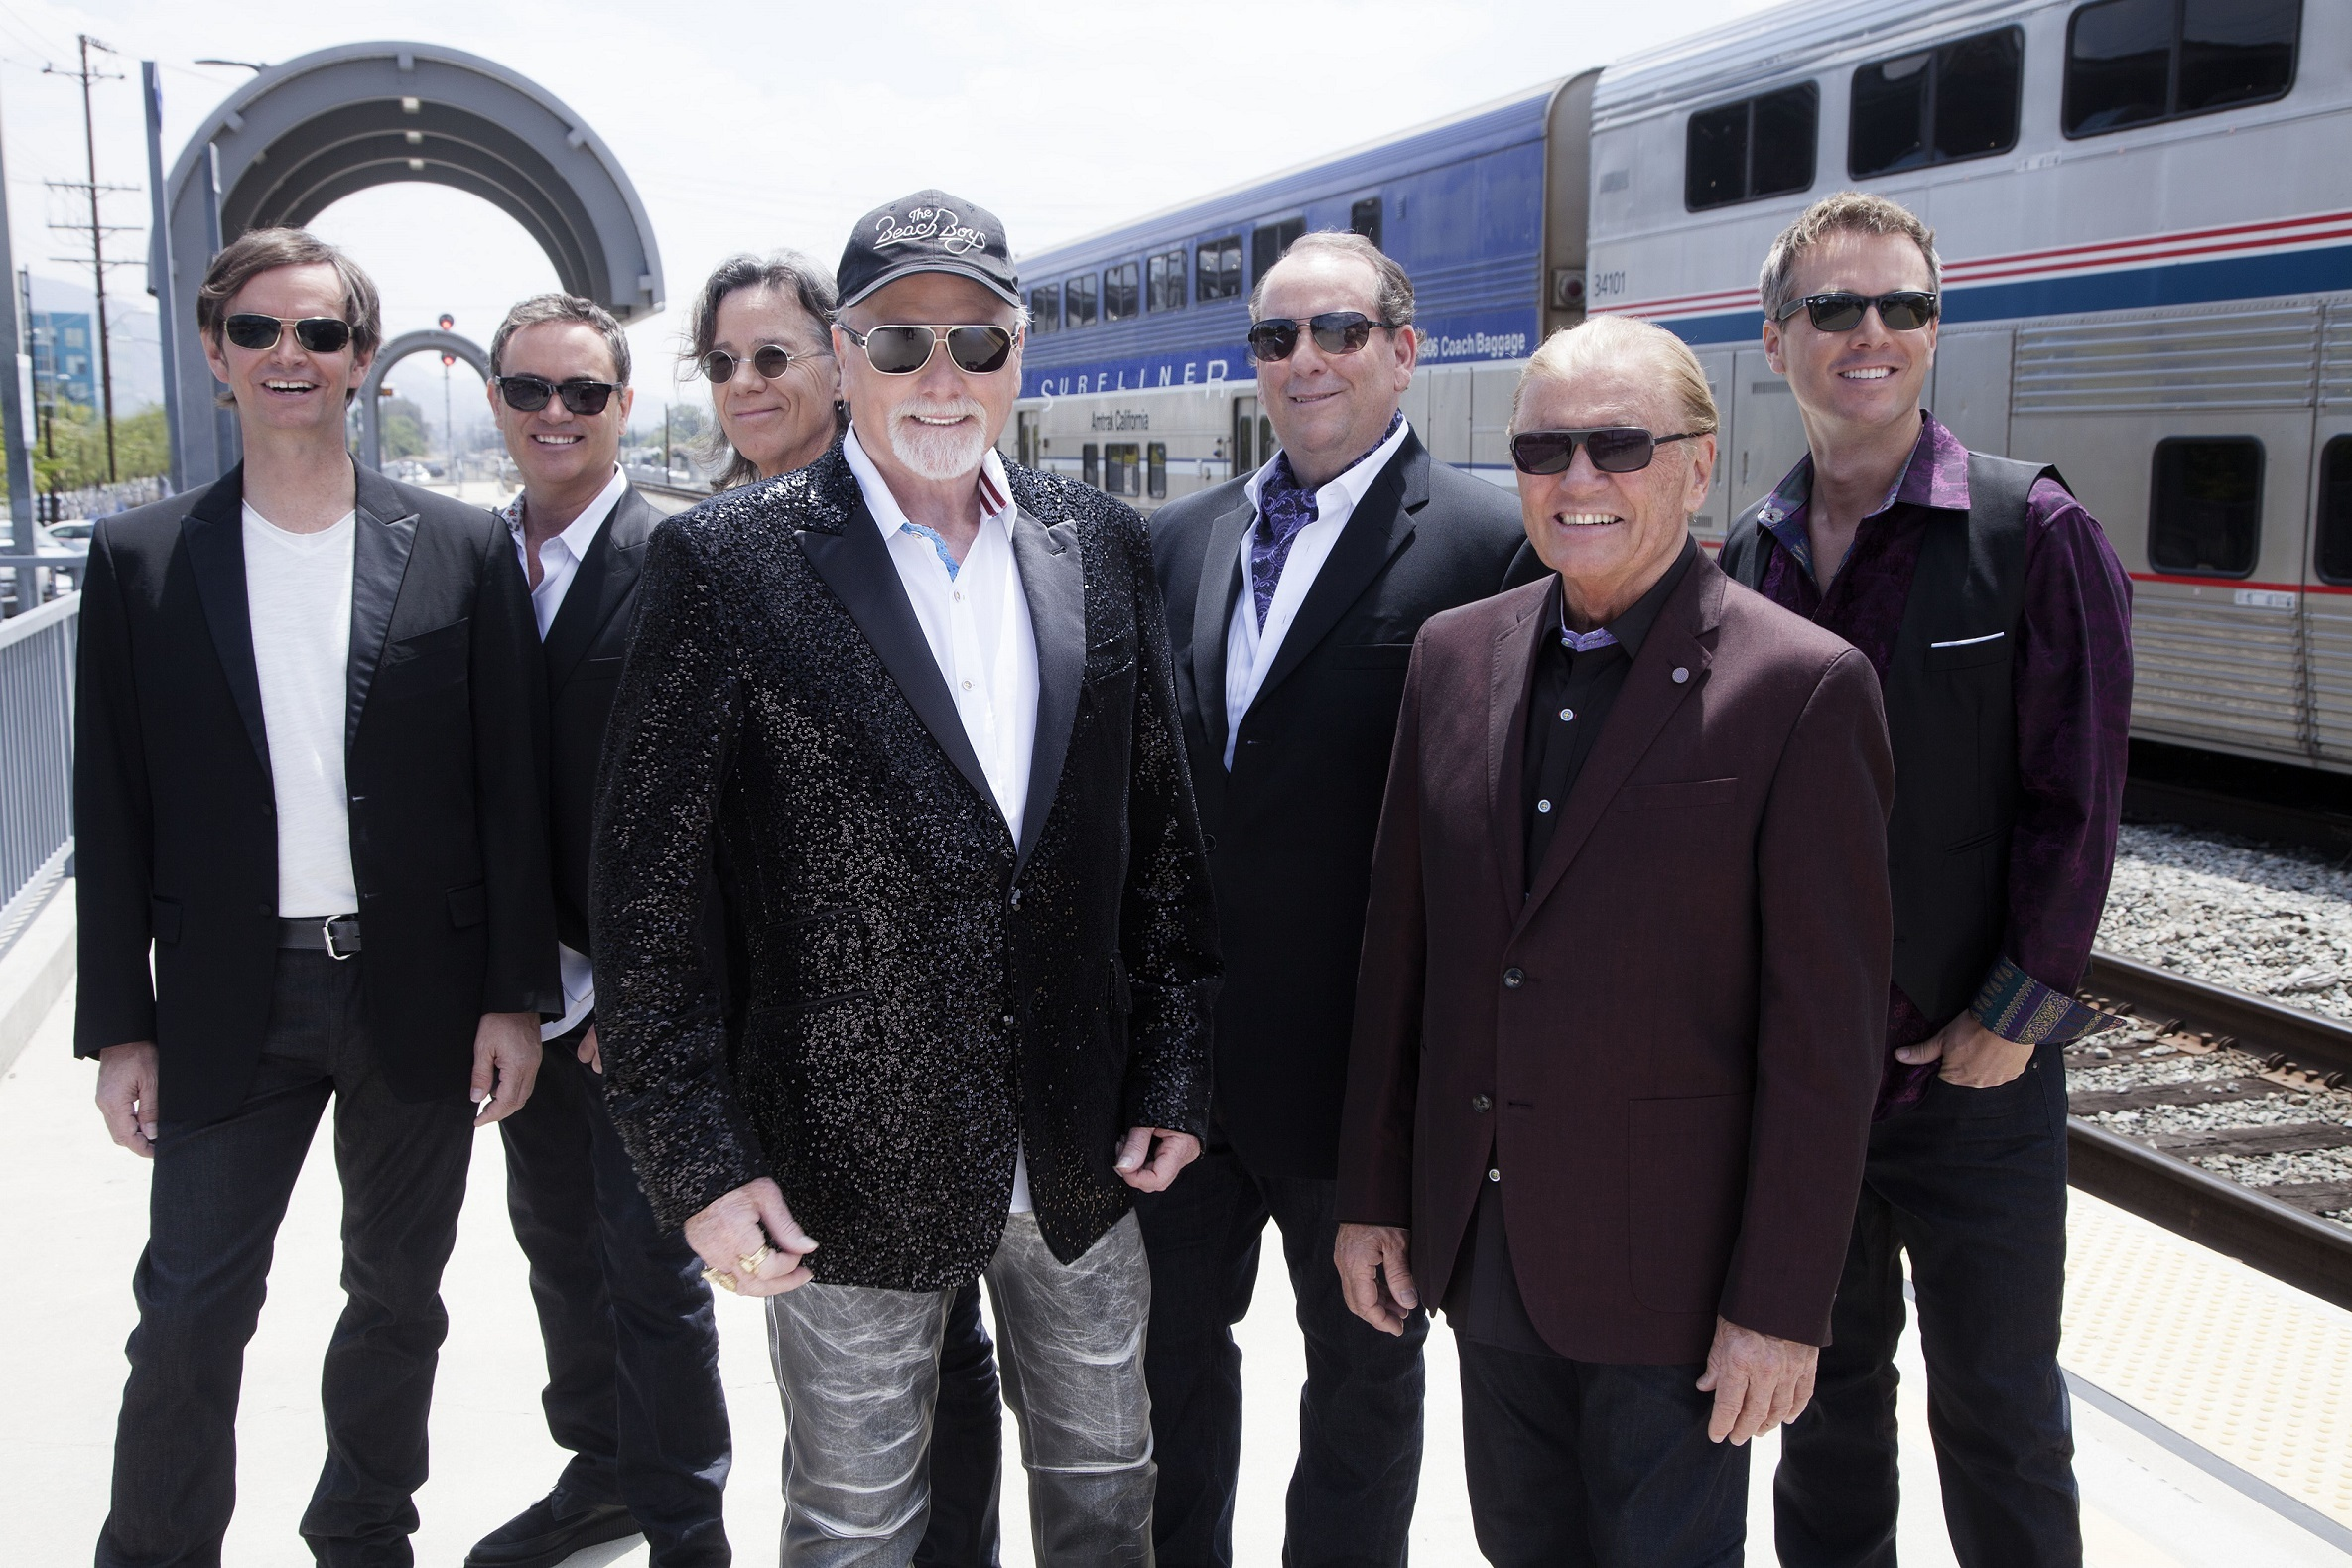 The Beach Boys will close the show next year